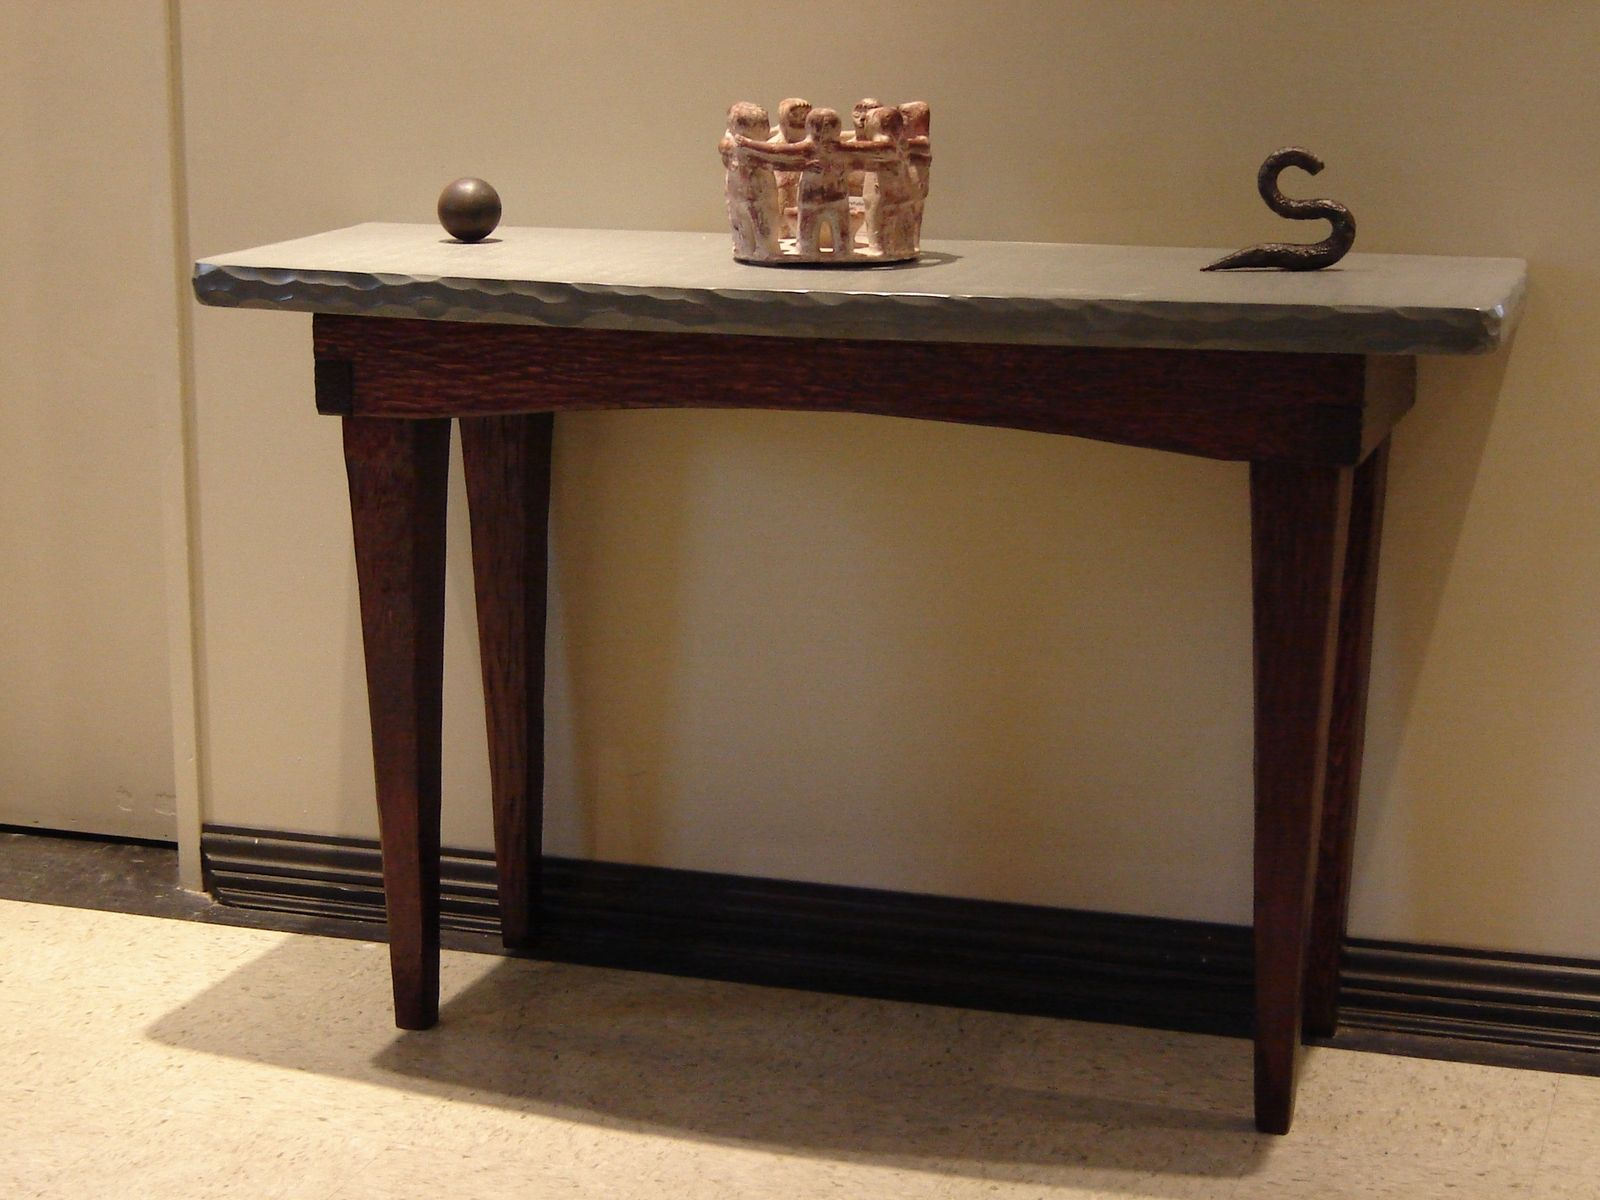 custom foyer table stone and wood stonehunterstudio accent made napkin bedside height modern tables ikea chinese ceramic lamps bunnings garden furniture living room design white